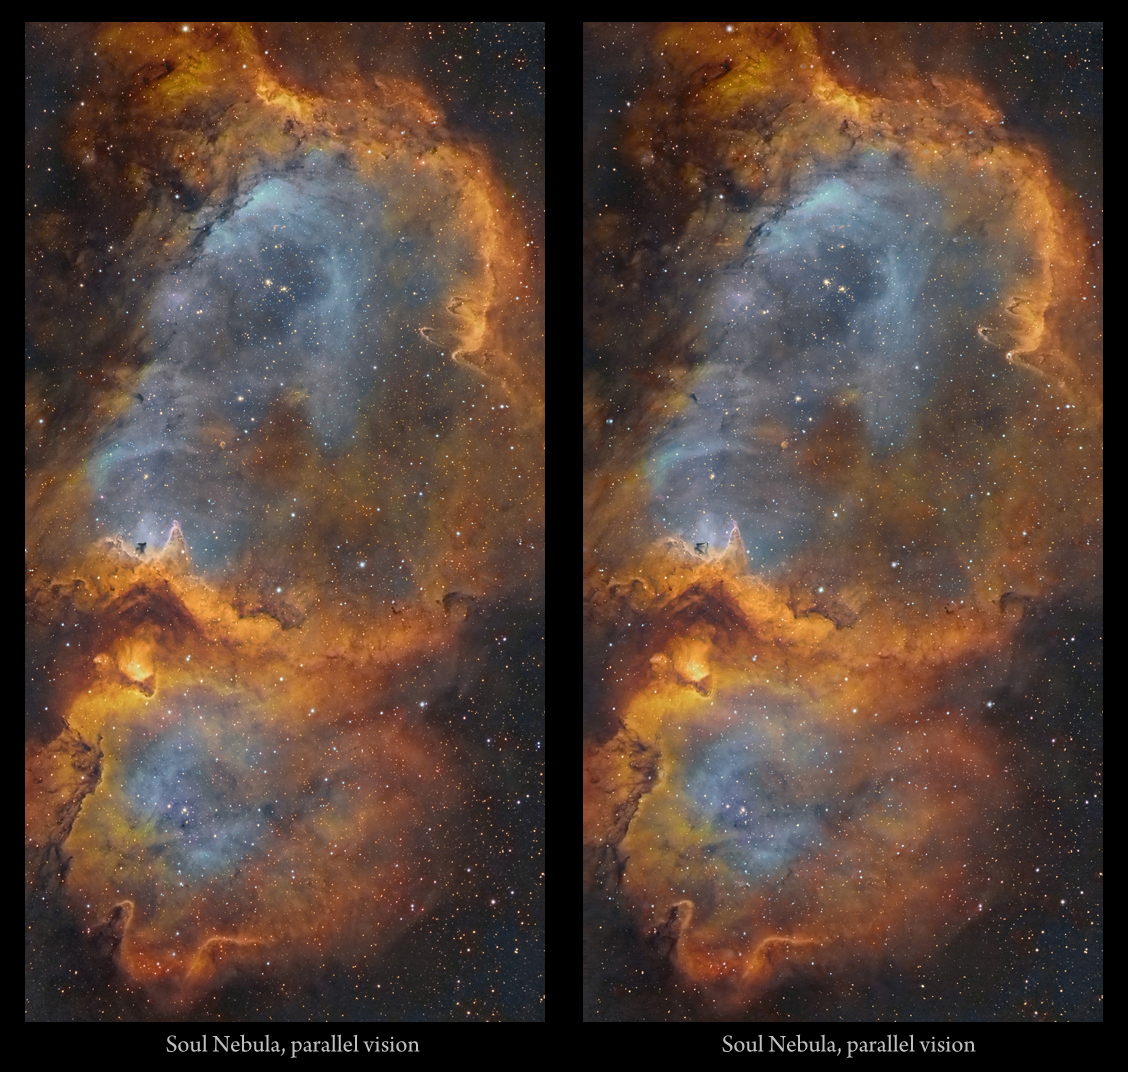 Astro Anarchy Soul Nebula Ic 1848 As An Experimental 3d Stereo Image Pair